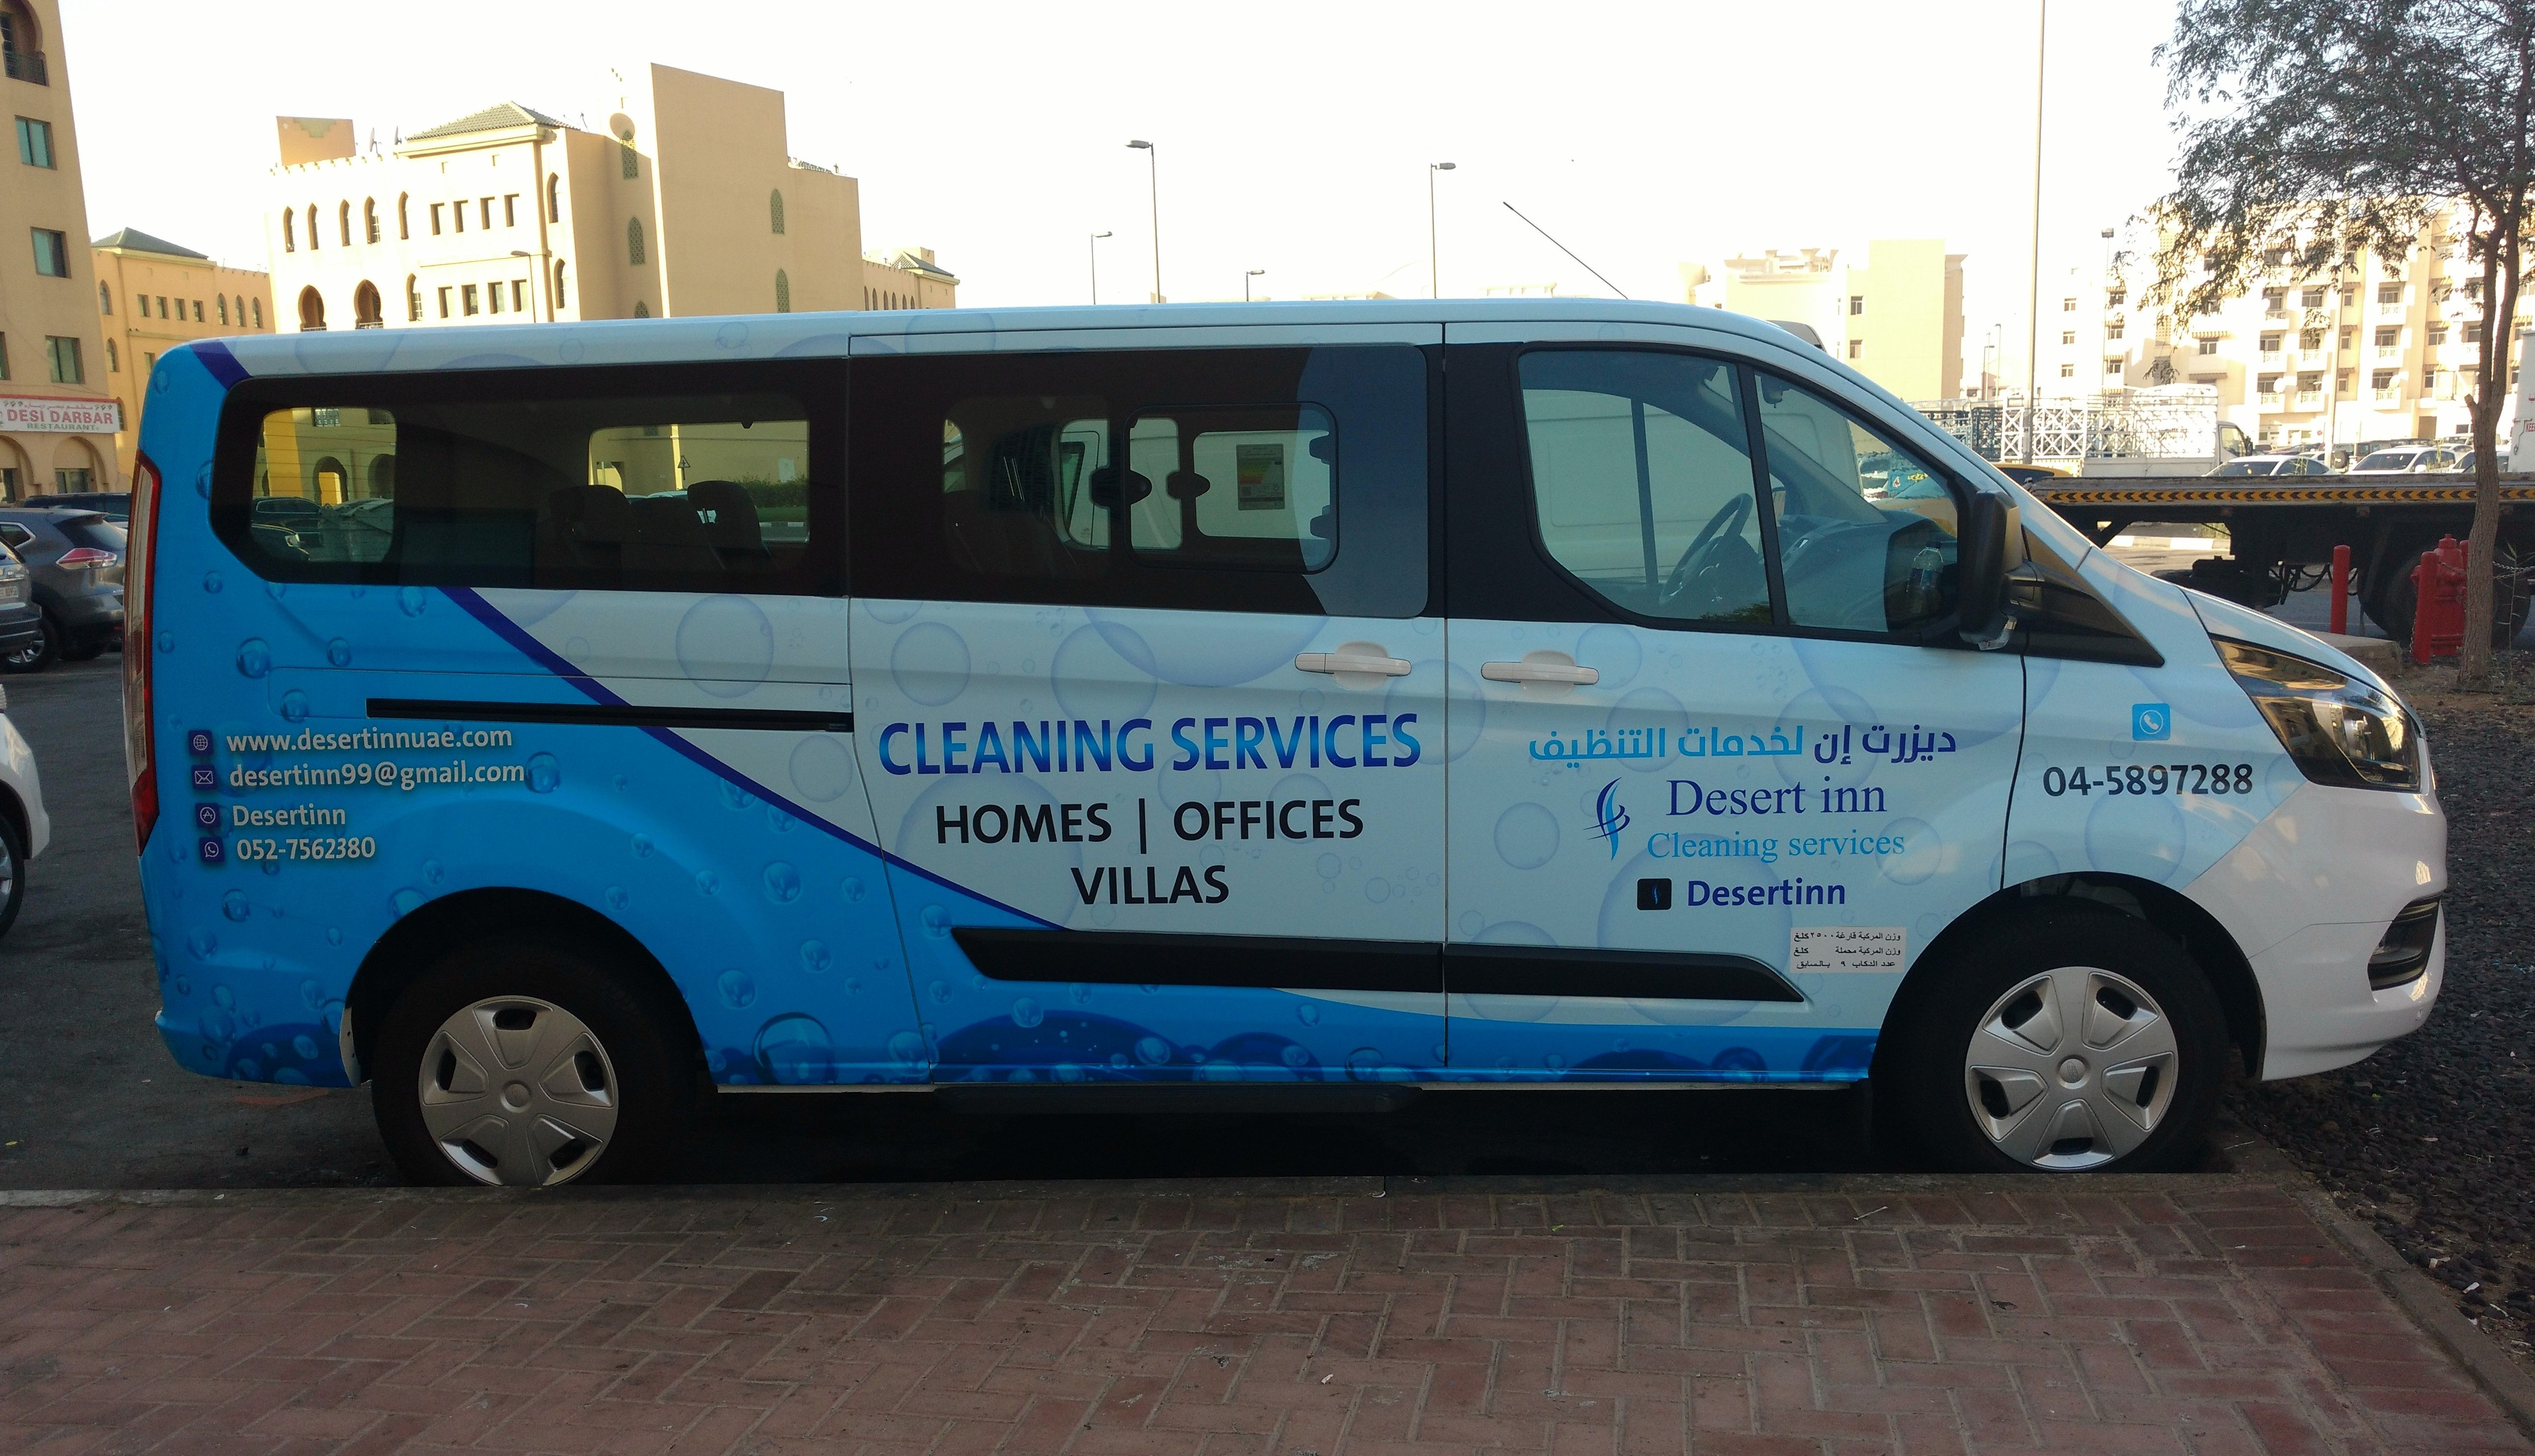 Vehicle Branding Car Stickers Bus Wrapping Vehicle Advertisement In Dubai Car Brands Truck Stickers Vehicles [ 2968 x 5167 Pixel ]